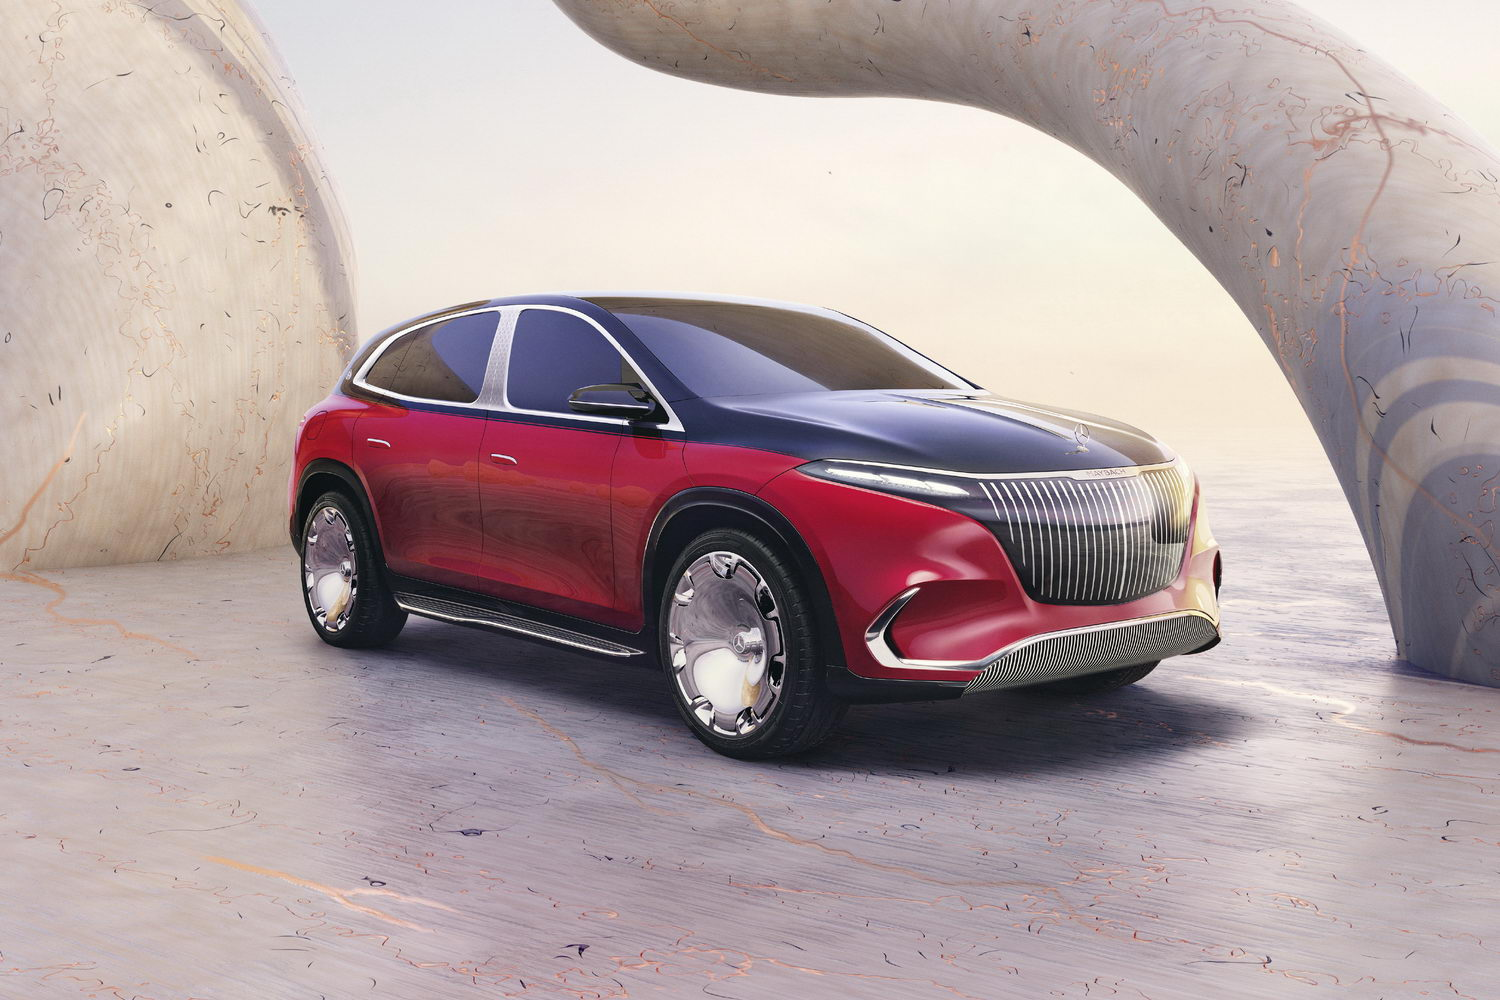 Car News | Maybach reveals EQS electric SUV concept | CompleteCar.ie